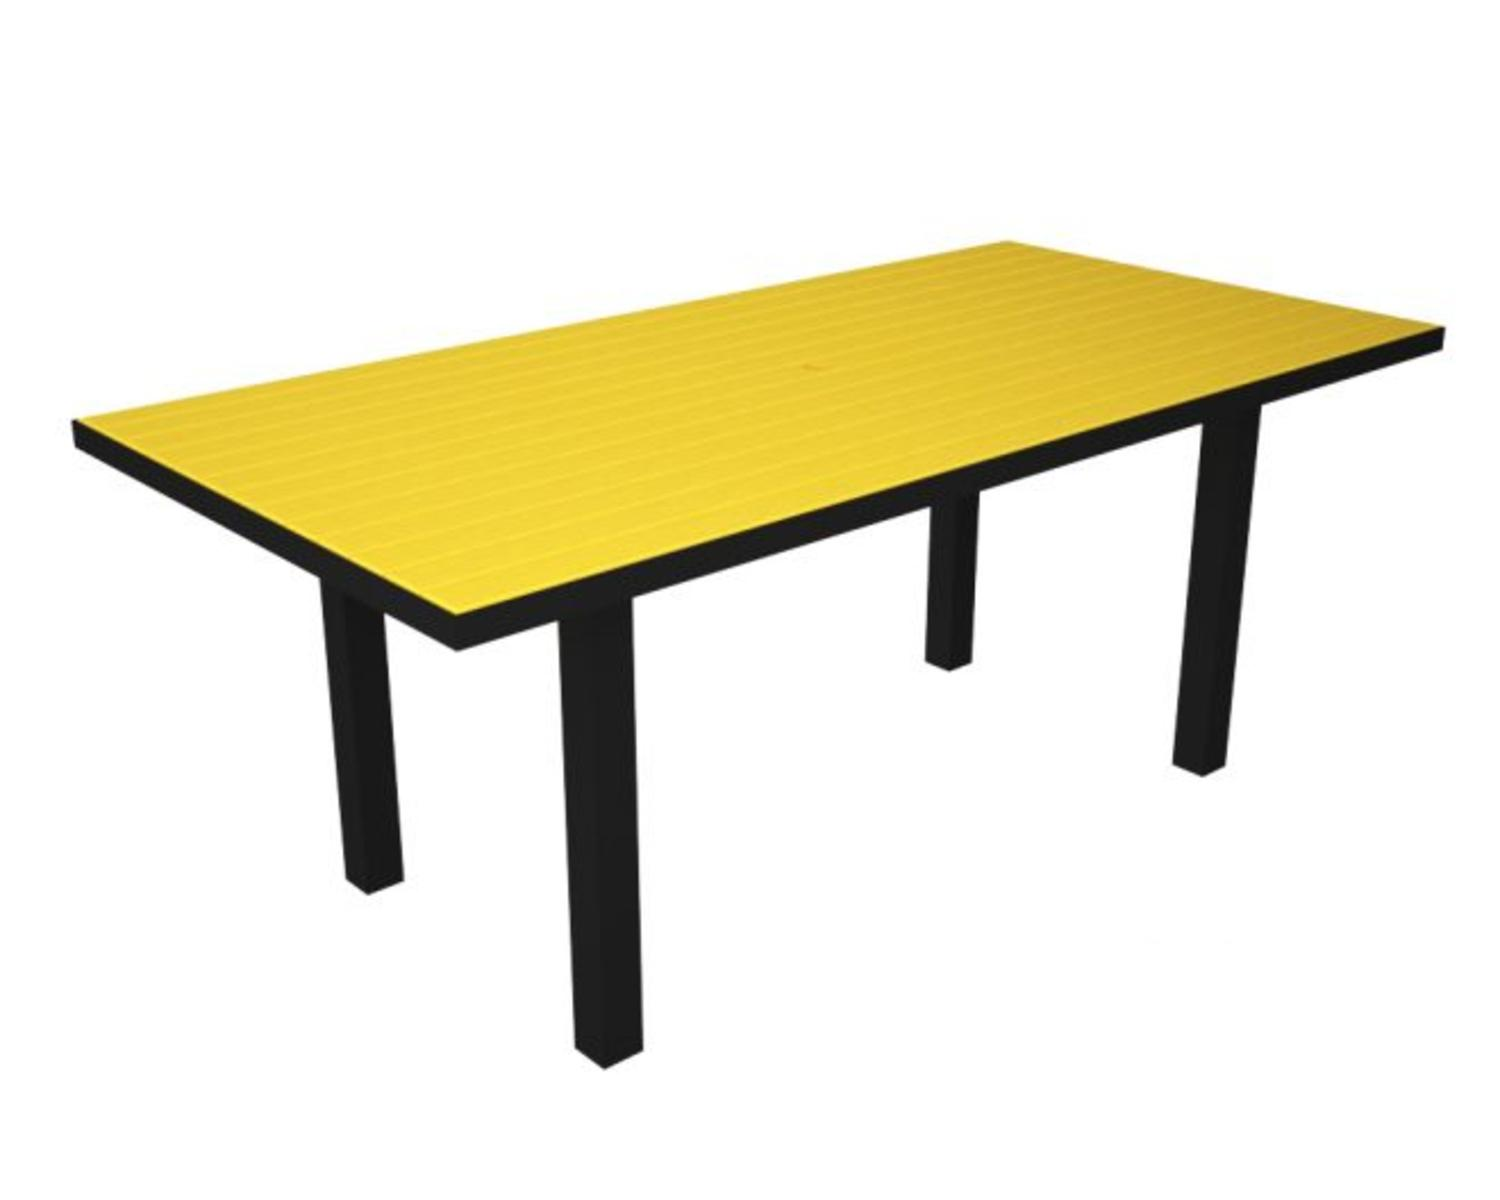 Recycled european rectangle dining table sunshine yellow for Nfpa 99 table 5 1 11